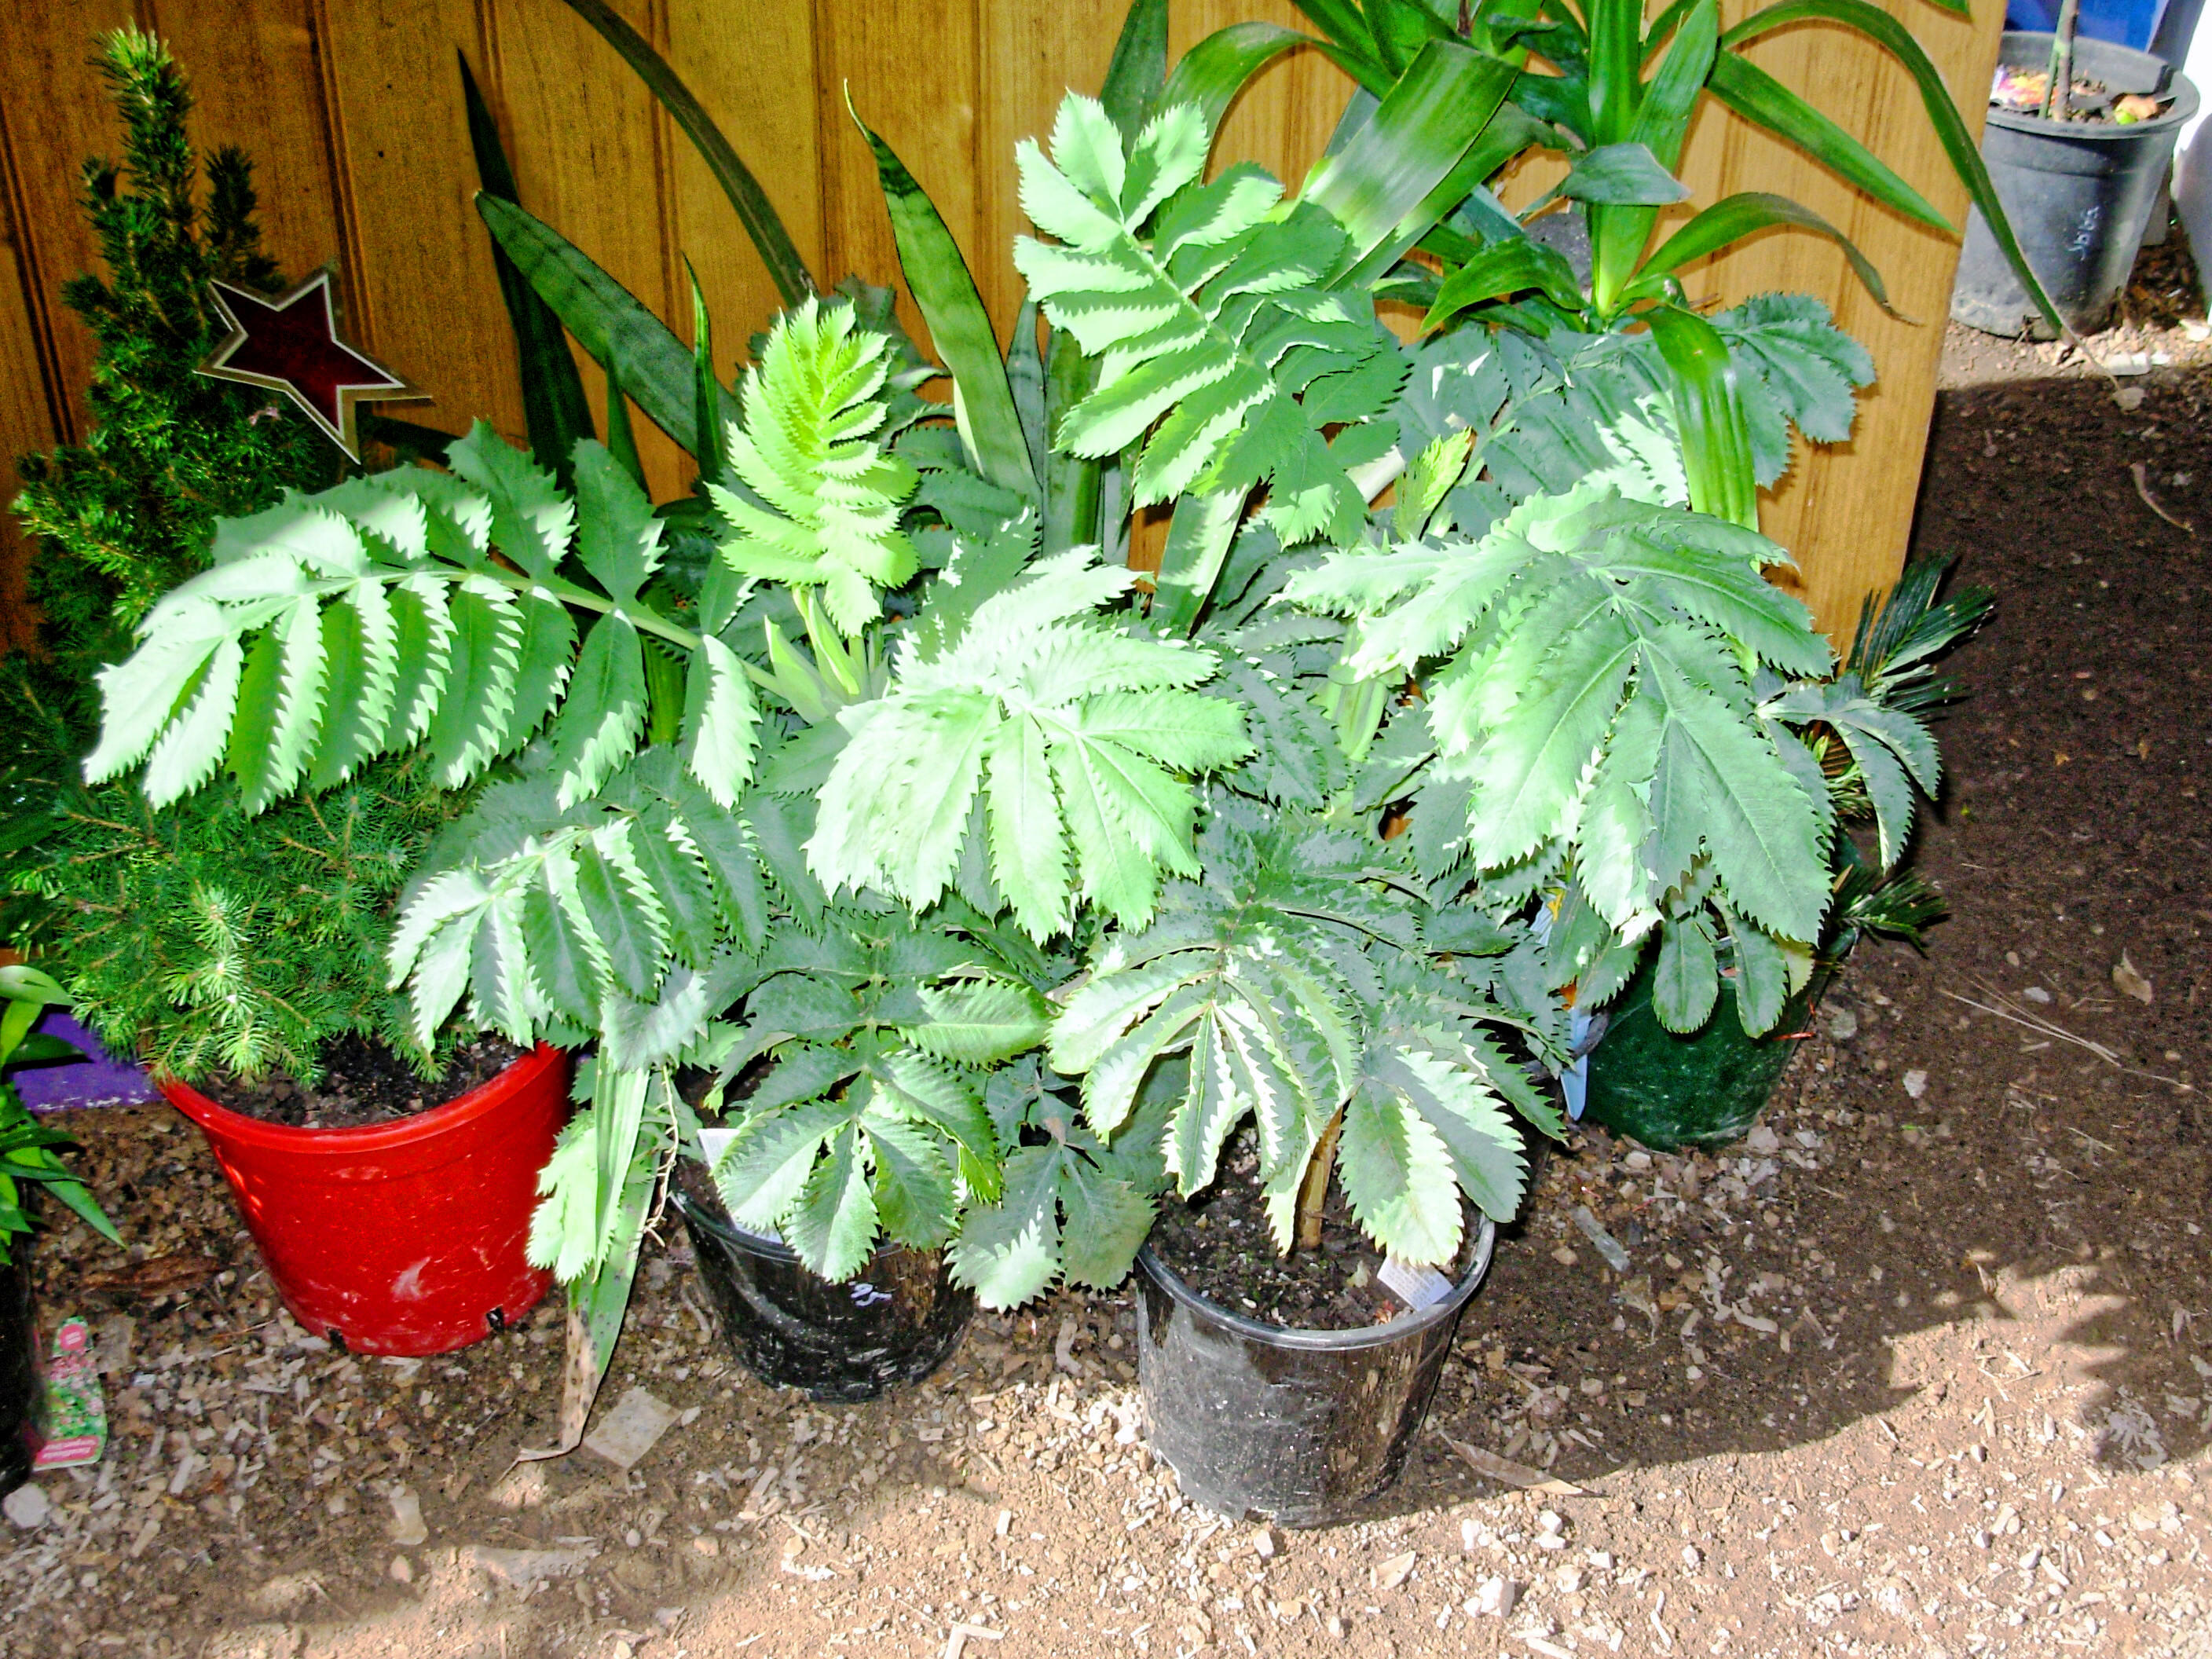 This should be Melianthus-major-1.jpeg.  Is it missing?